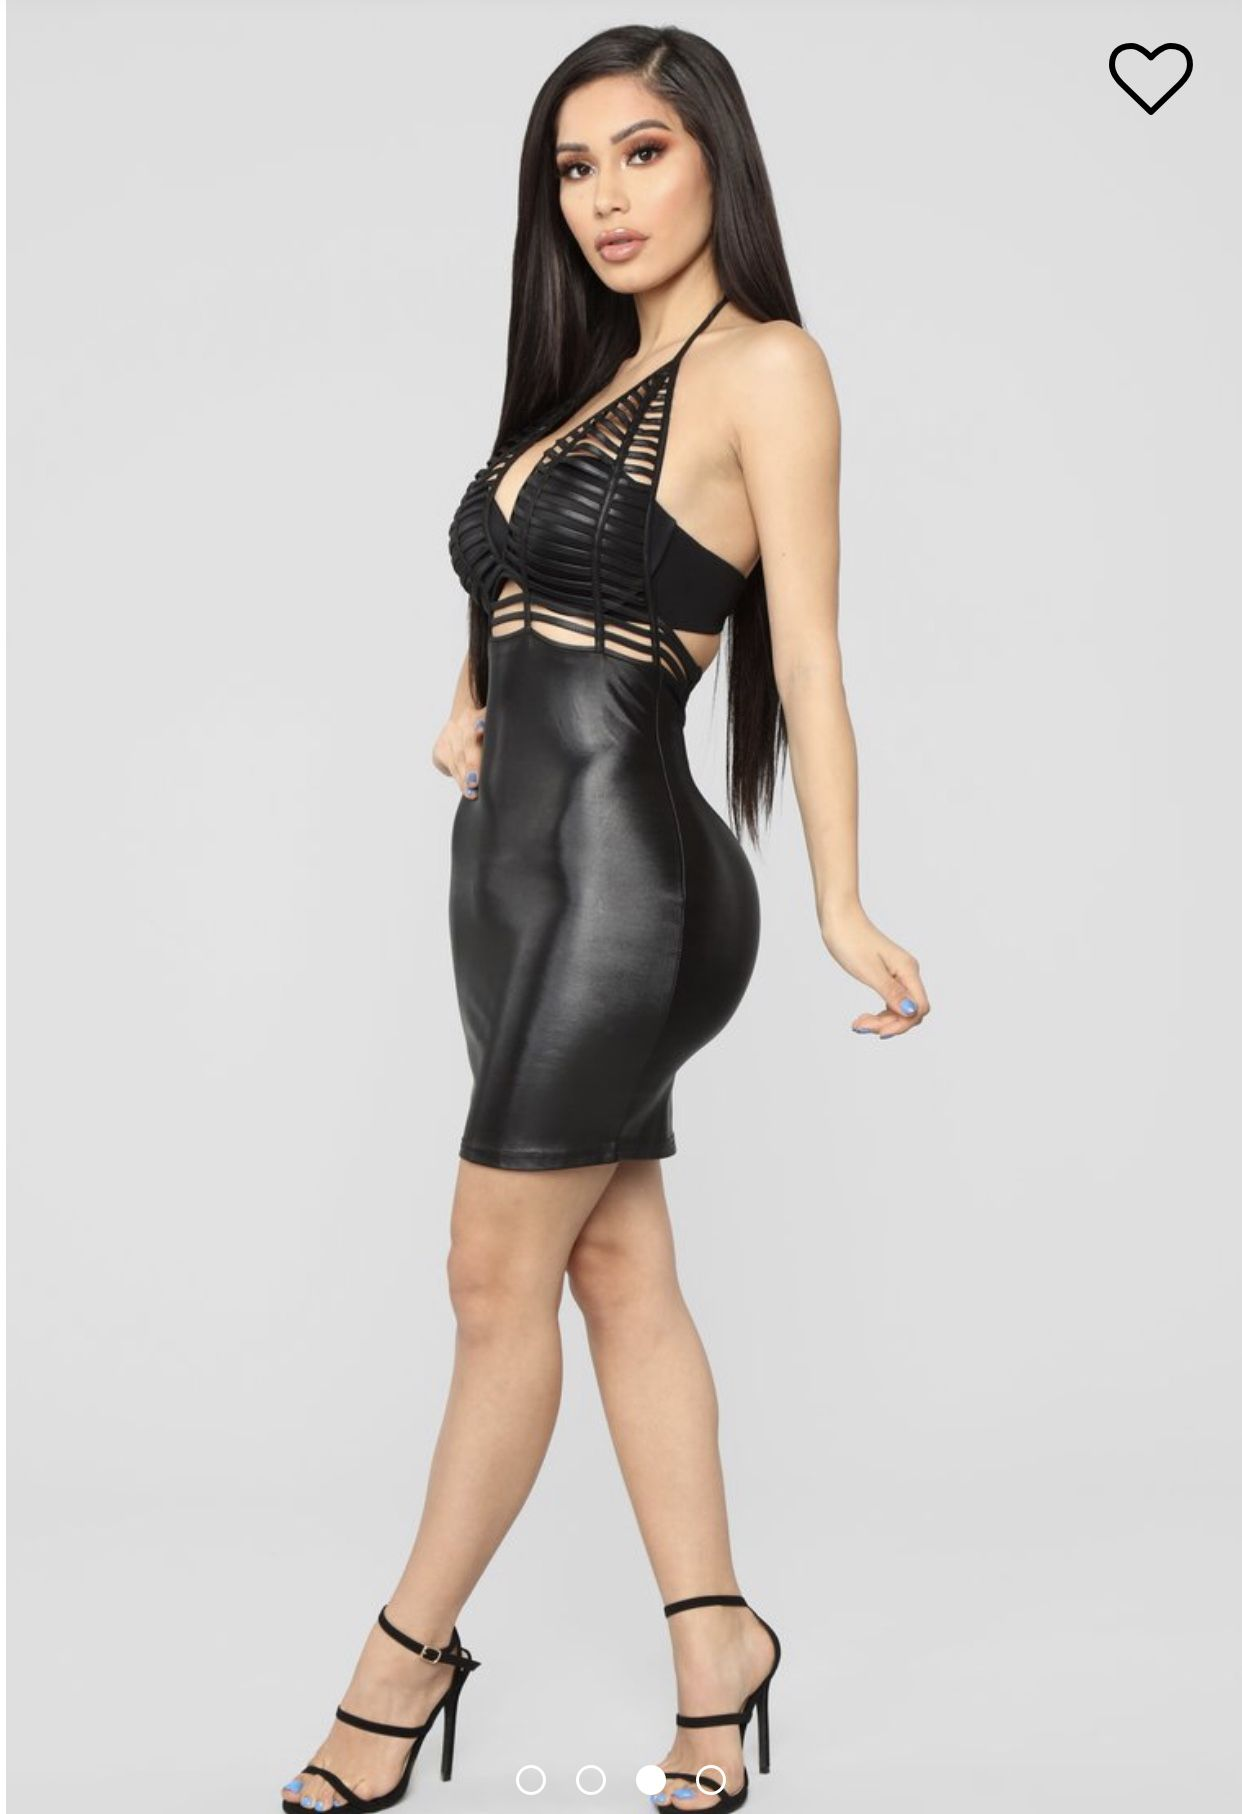 Women's Clothing Selfless New Sexy Leather Dress Women Strapless Mesh Bandeau Dress Wet-look Evening Party Clubwear Leather Bodycon Short Mini Dress